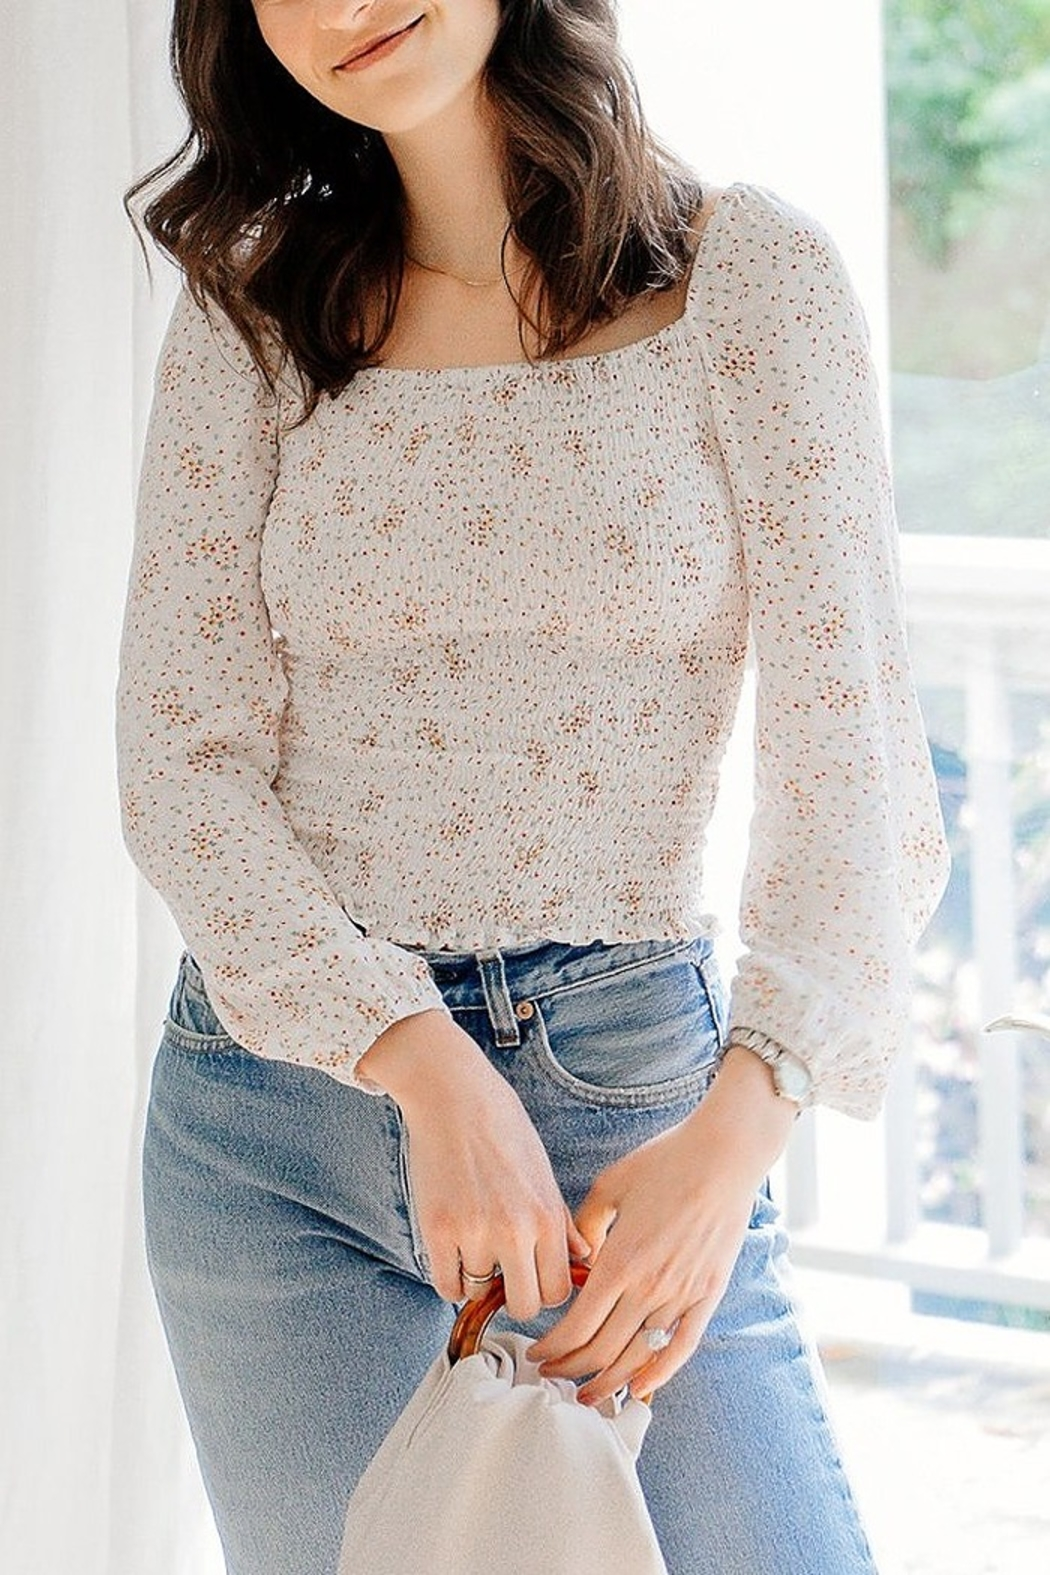 Cupcakes & Cashmere SAVANNAH SMOCK L/S TOP - Front Cropped Image